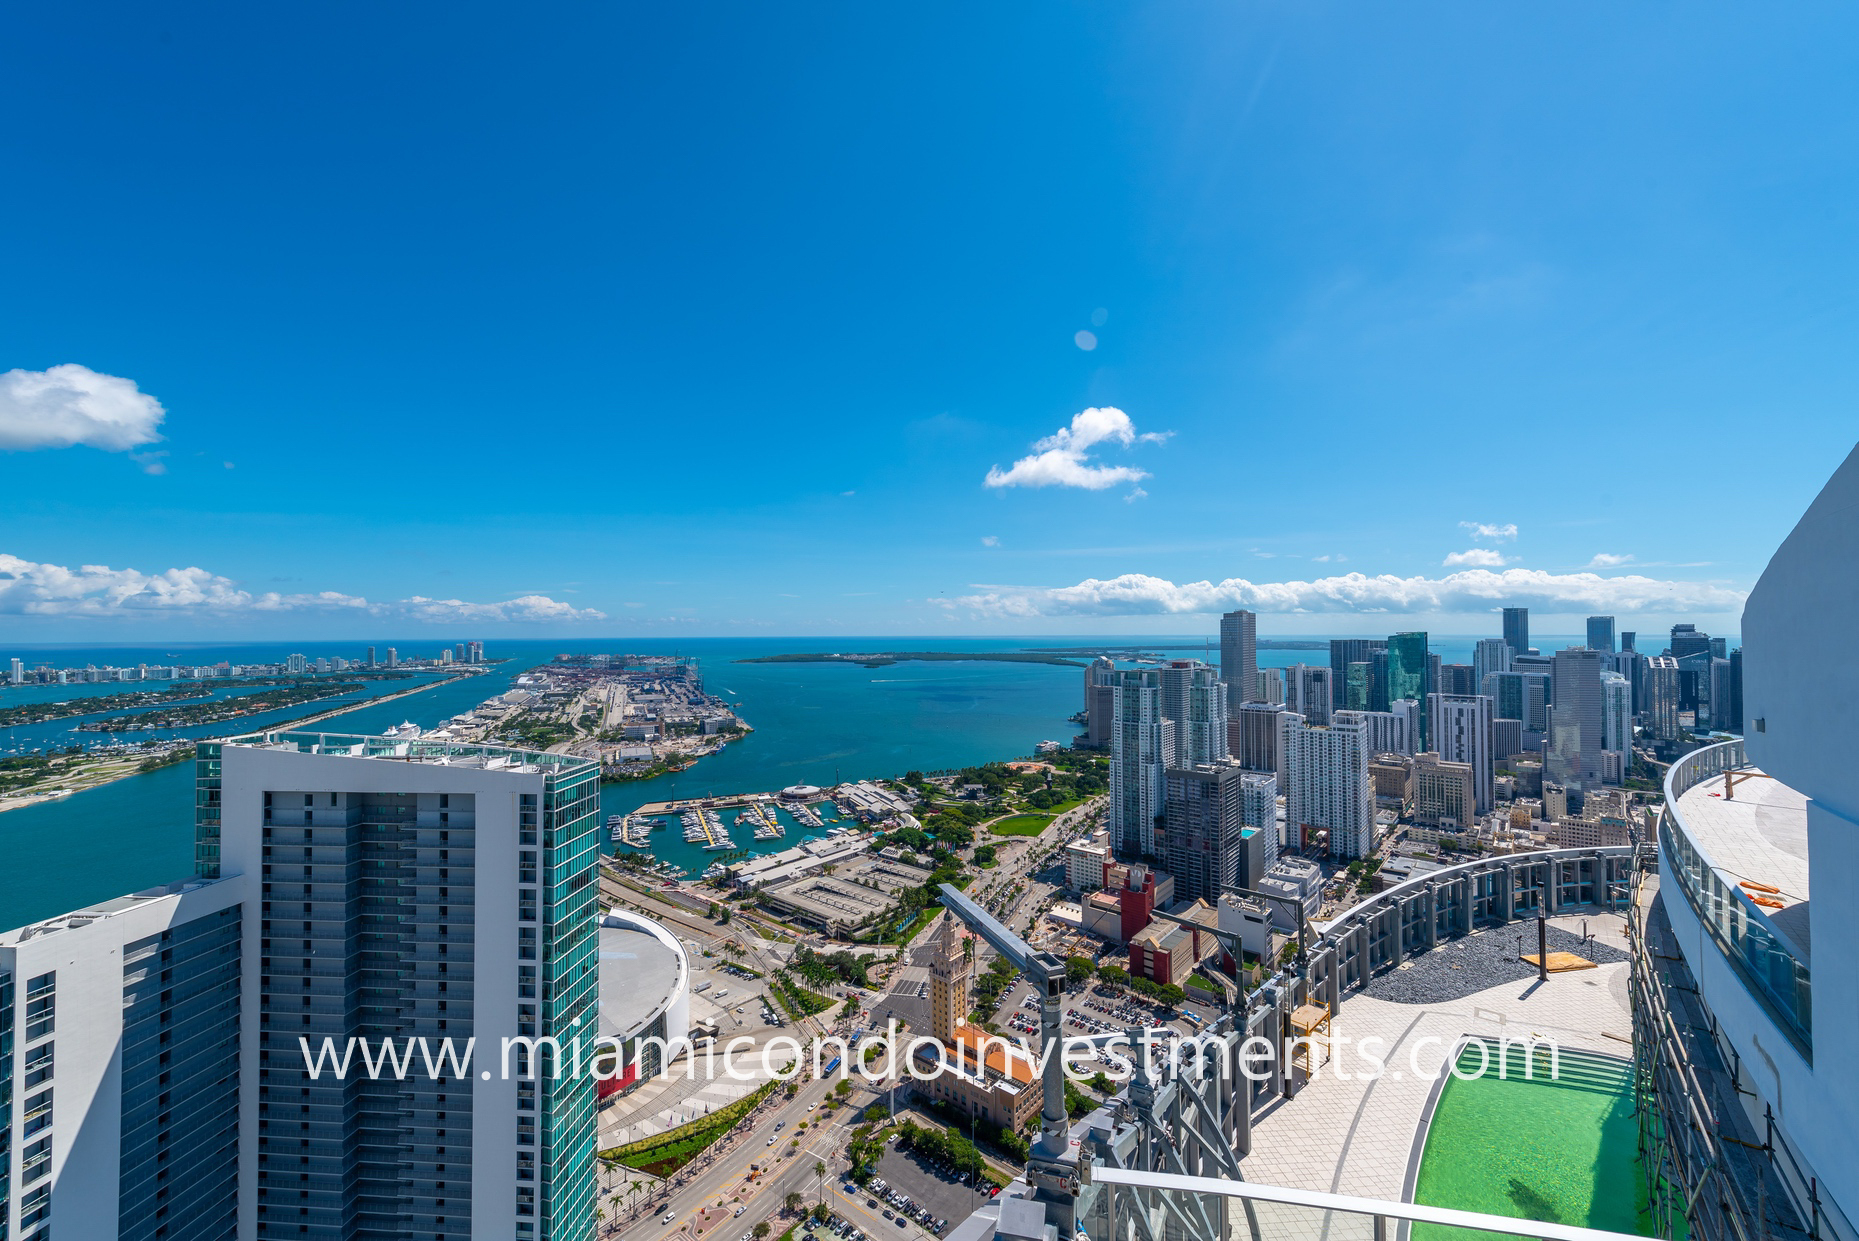 Views southeast from atop Paramount Miami Worldcenter